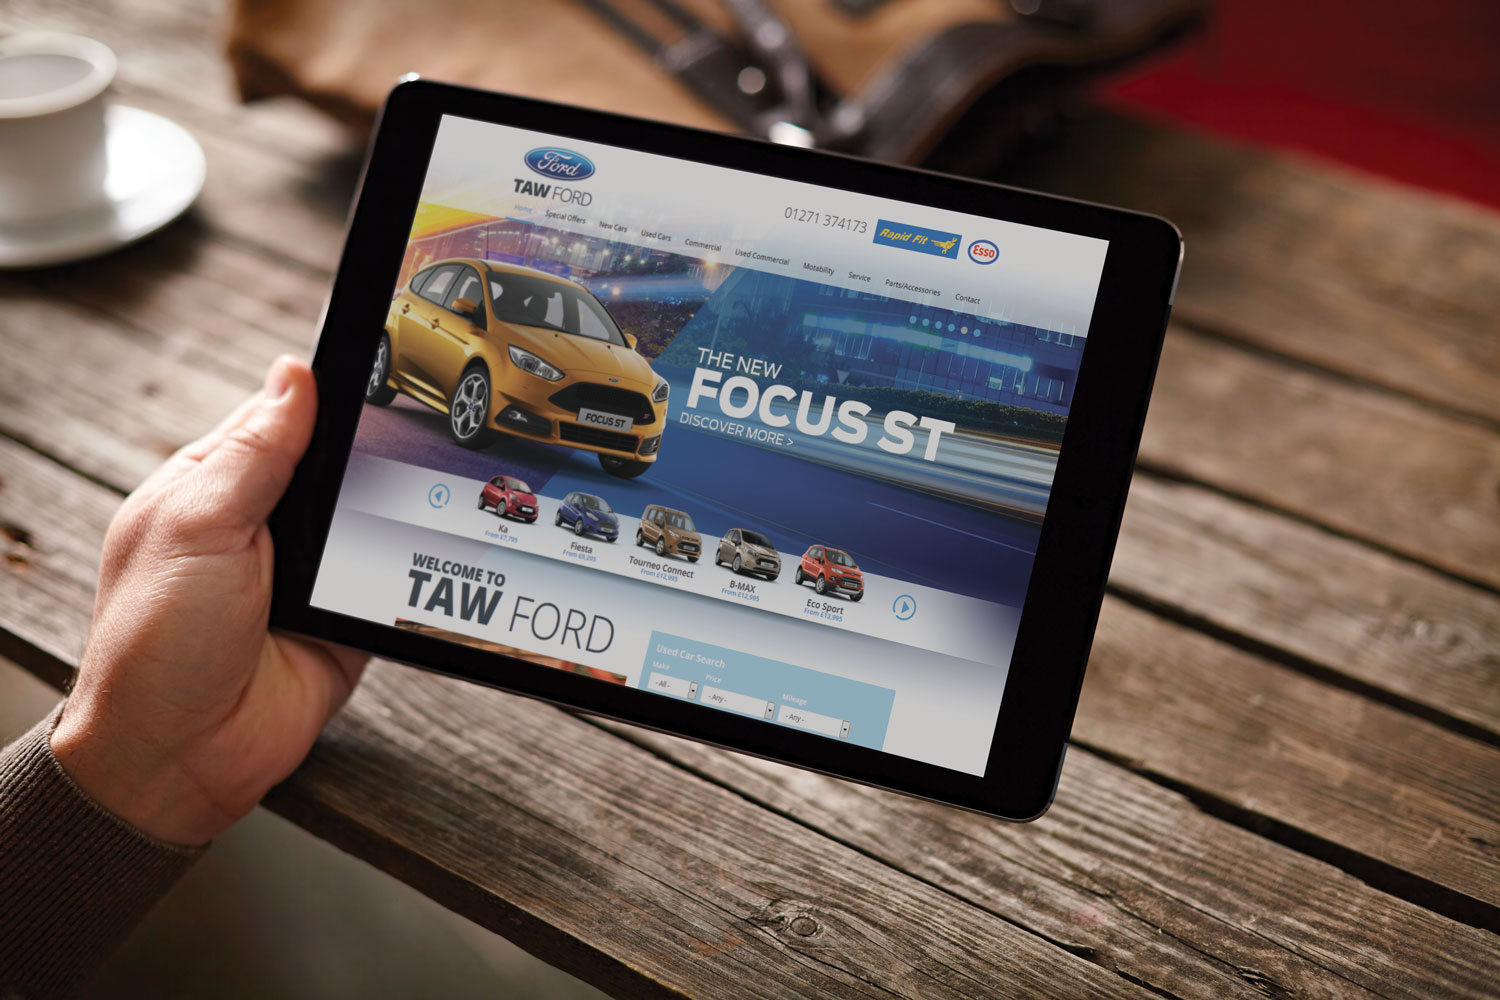 Taw Ford Drupal Car Dealership Website